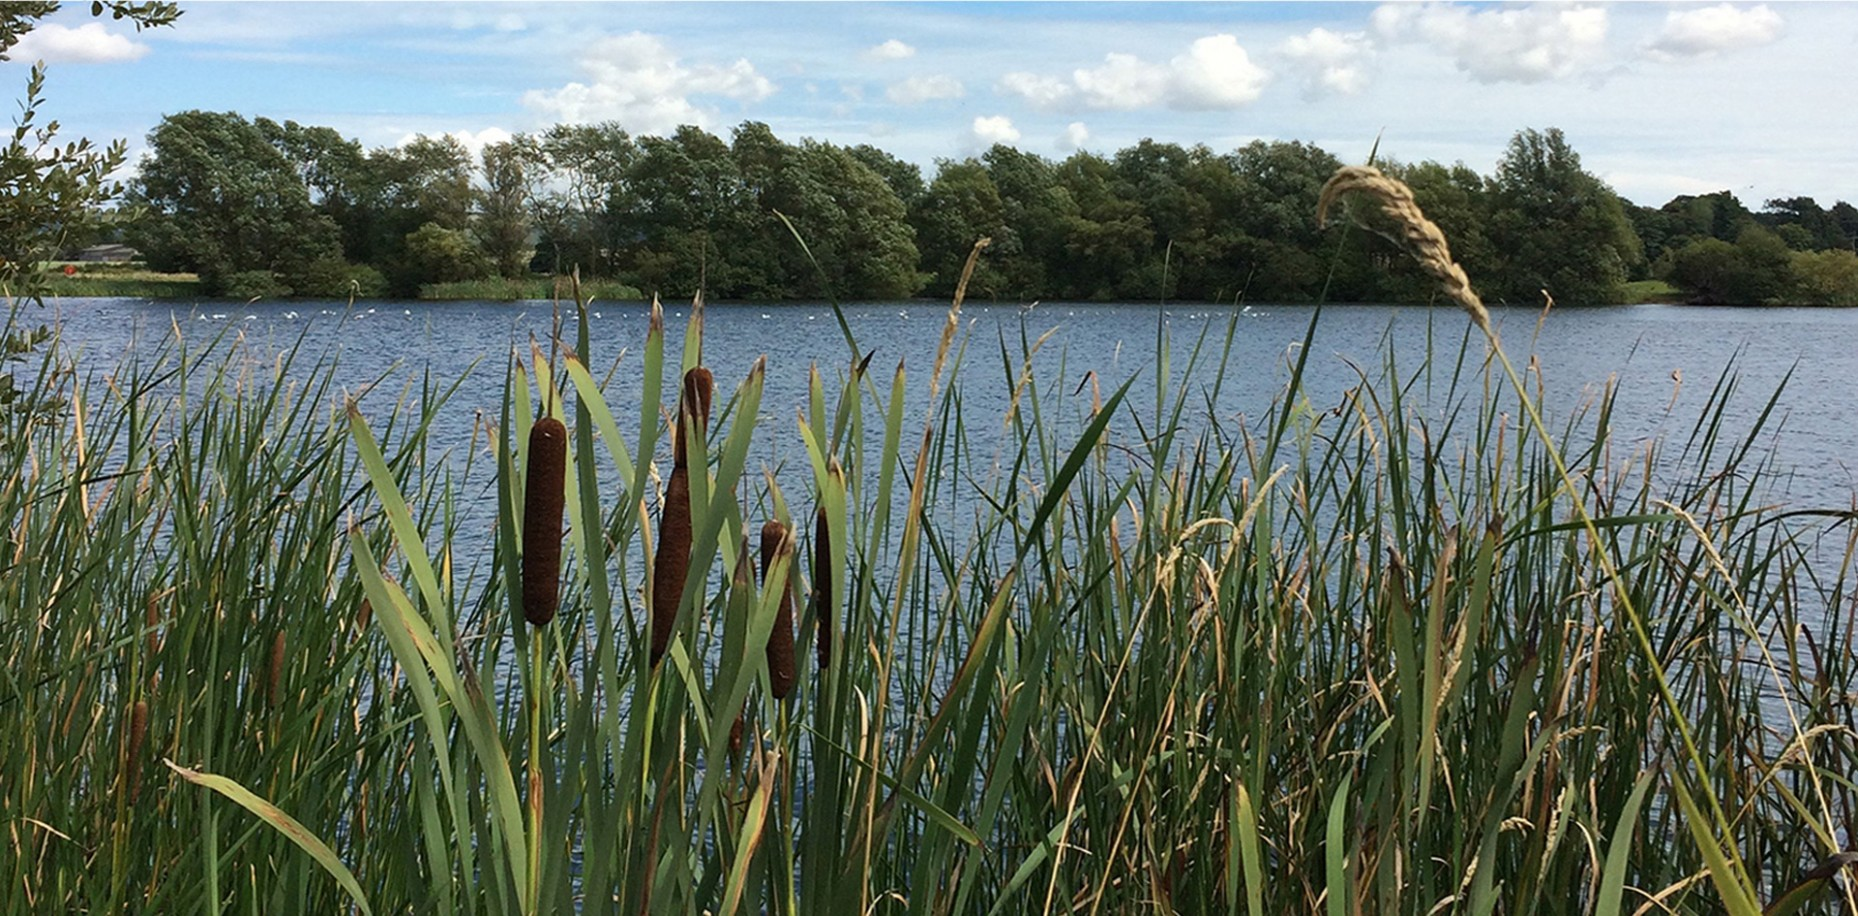 March Super Offer weekend on Saturday 6th & Sunday 7th March at Conningbrook Lakes, Ashford